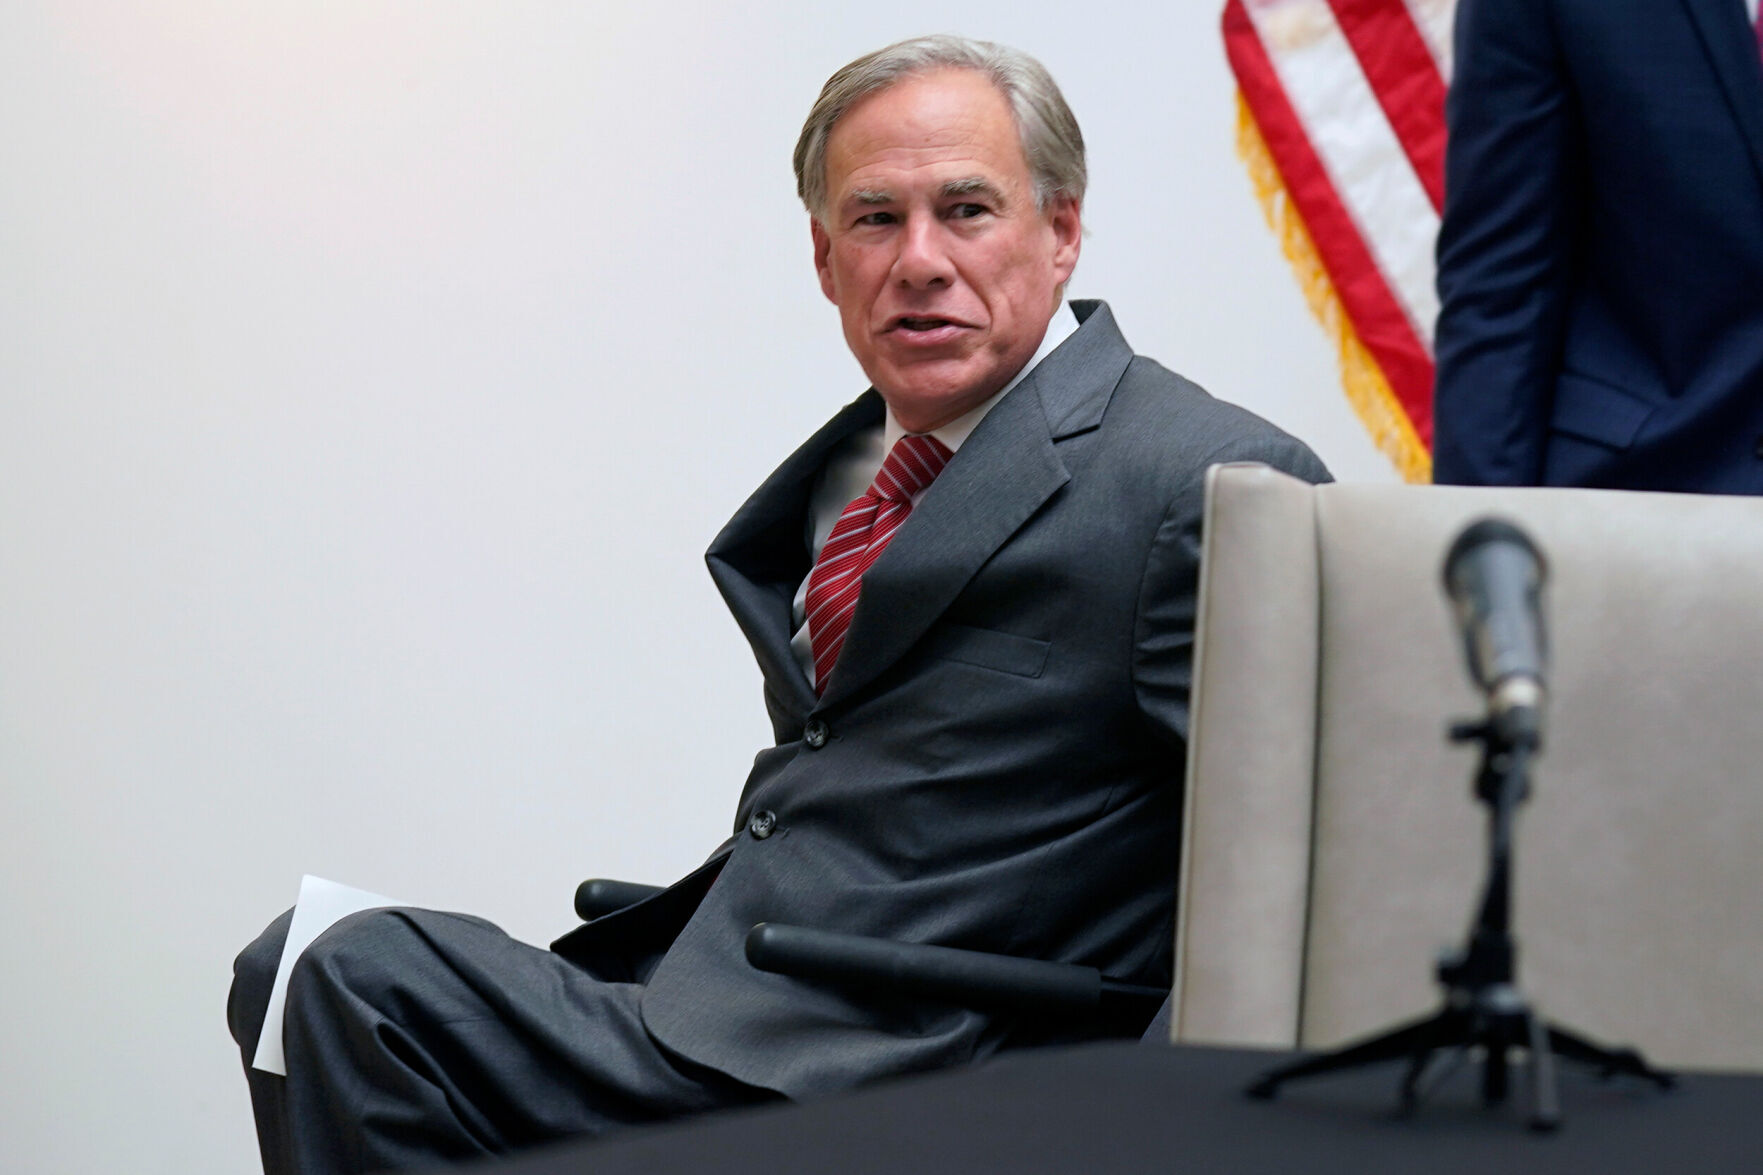 Texas governor says he's committed to eliminating rapists. The state has more than 5,000 untested rape kits 6